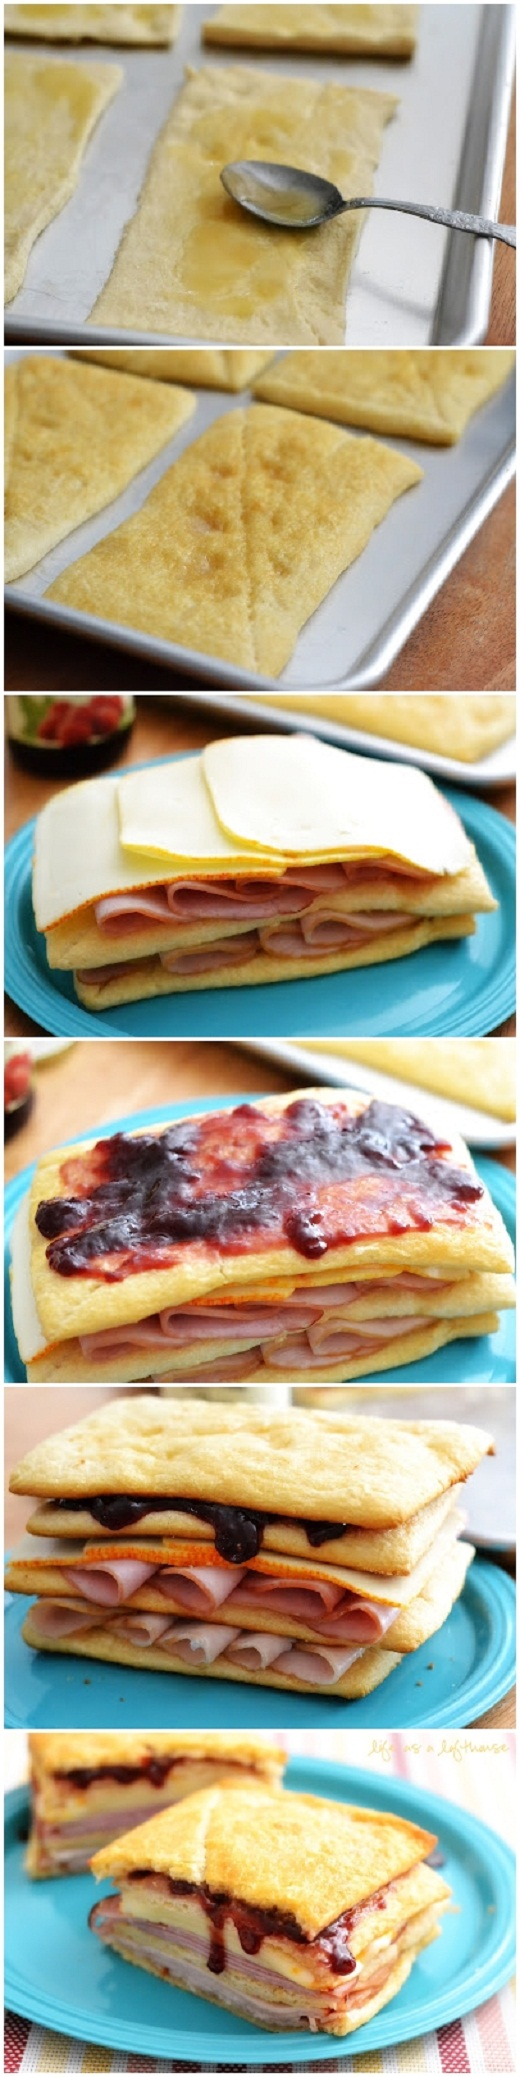 Monte-Cristo-Sandwiches-Recipe